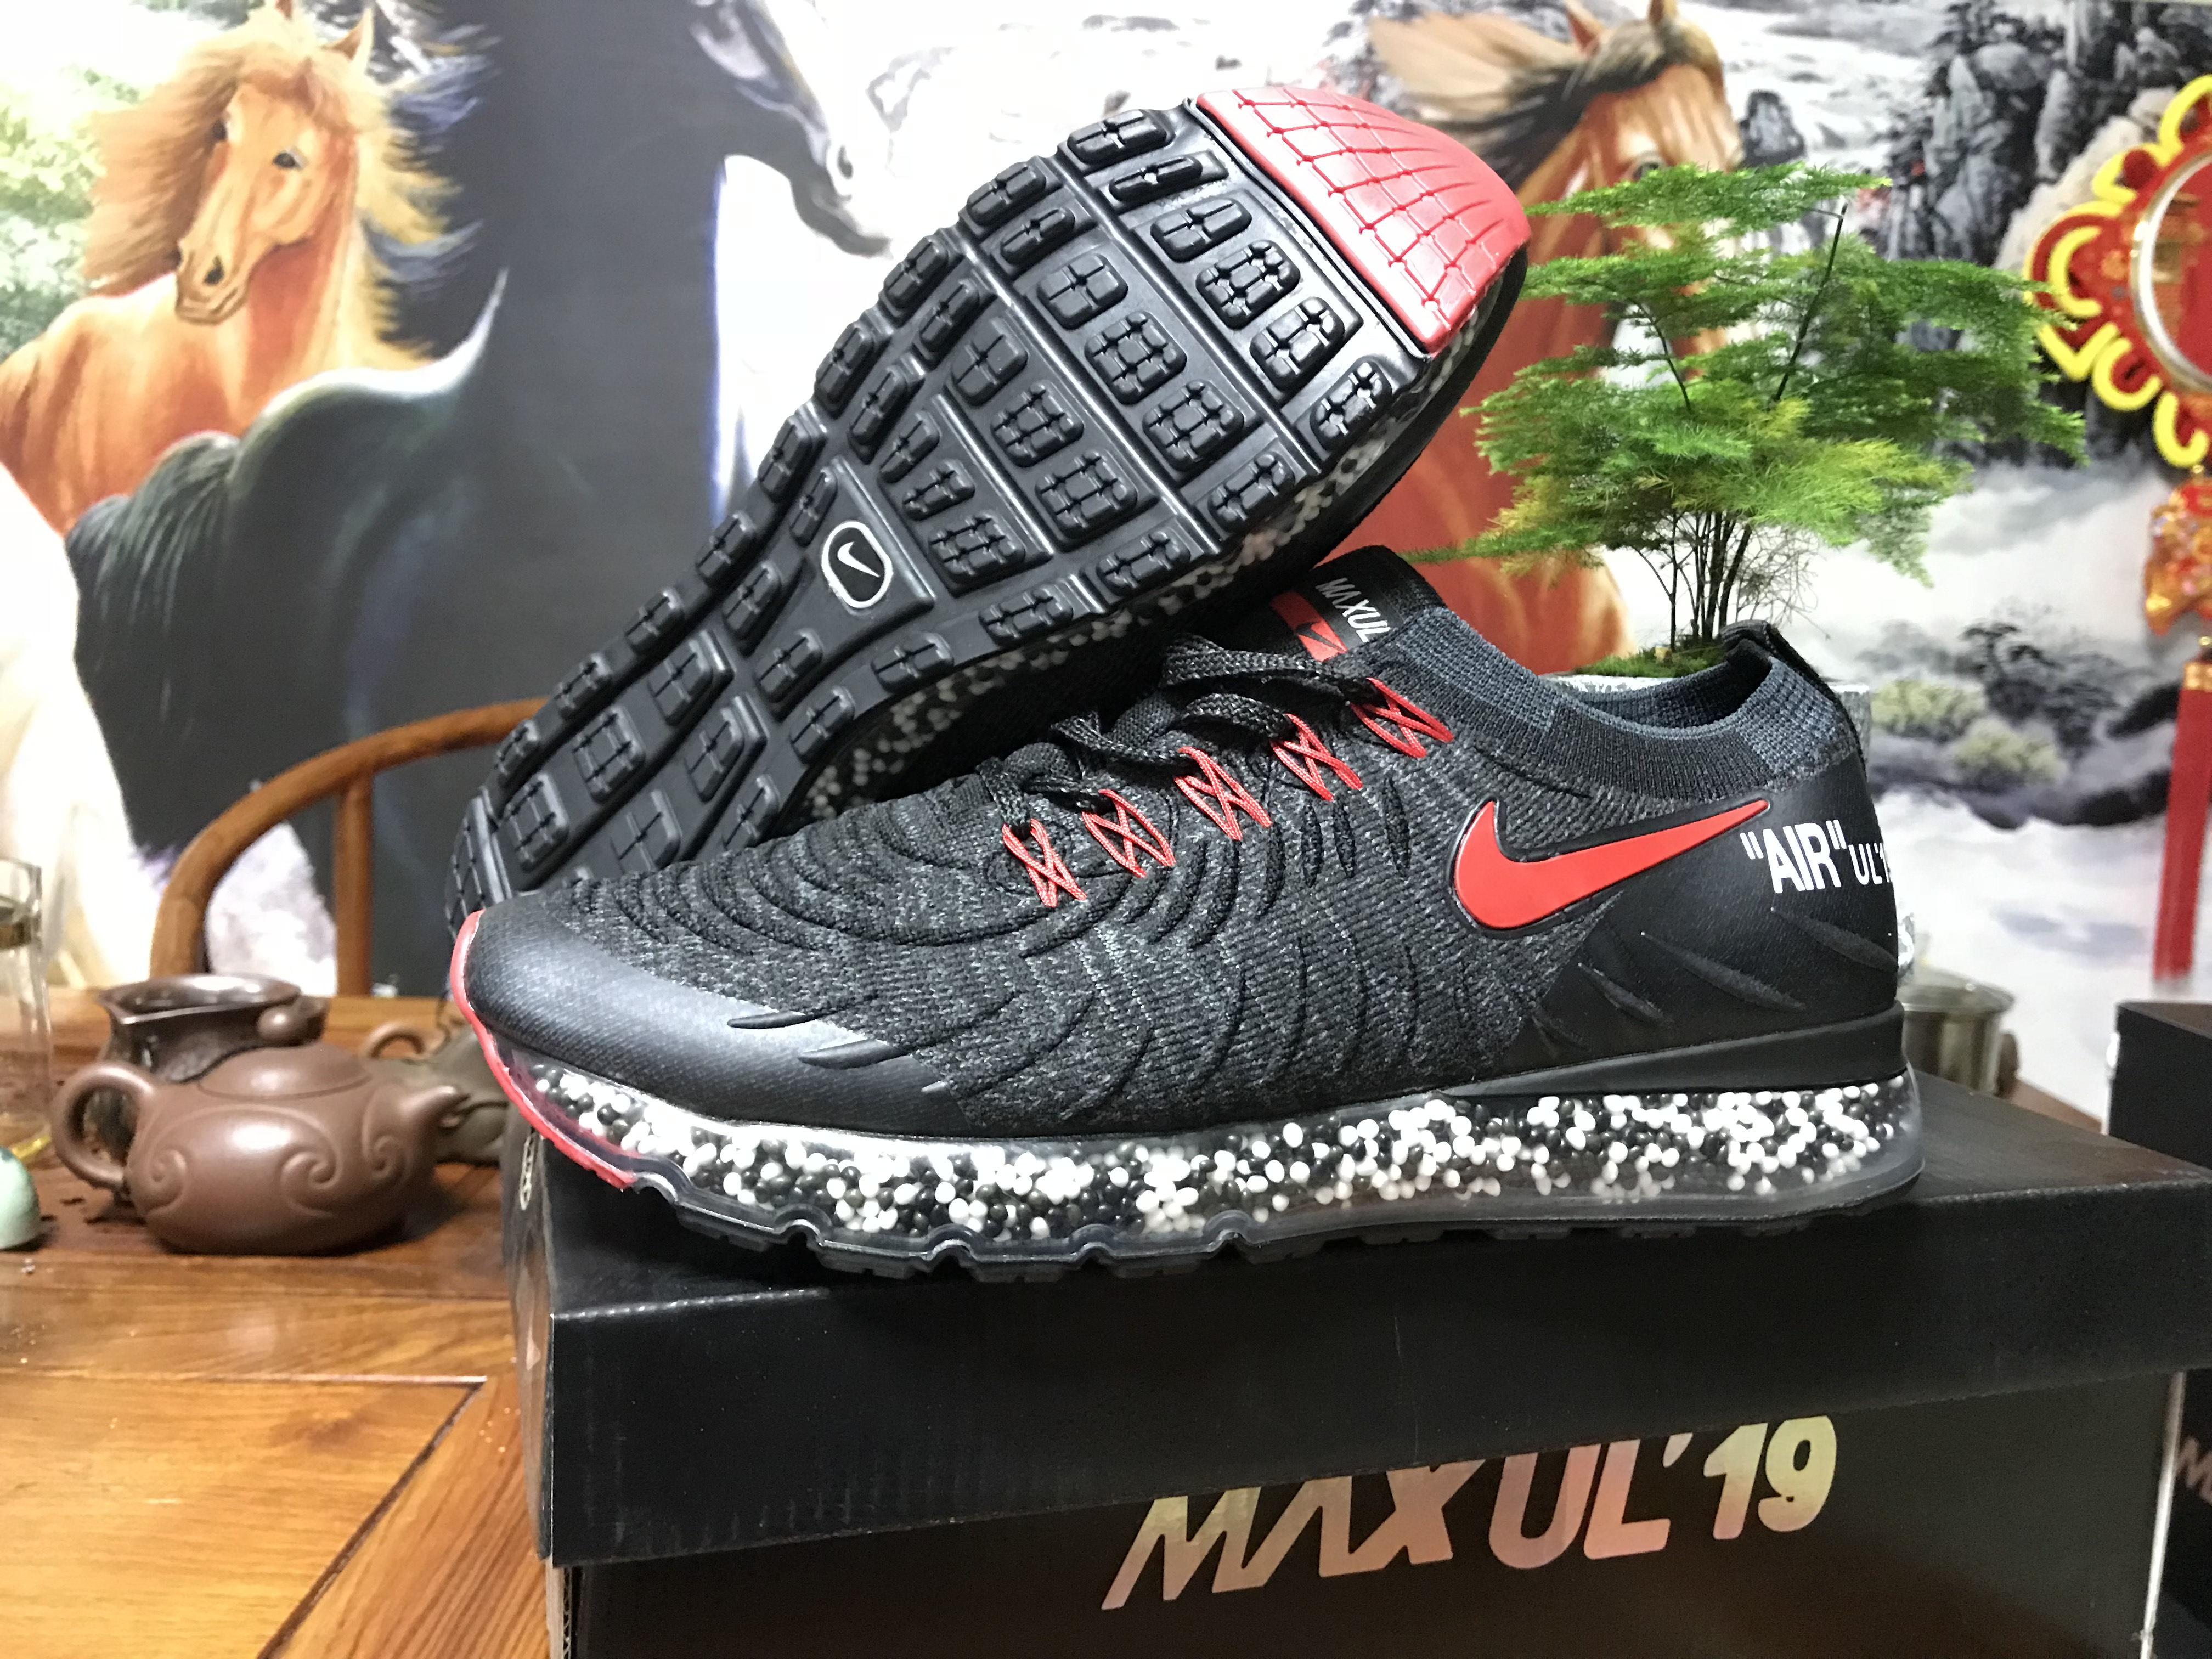 Nike Air Max UL' 19 Black Red Shoes